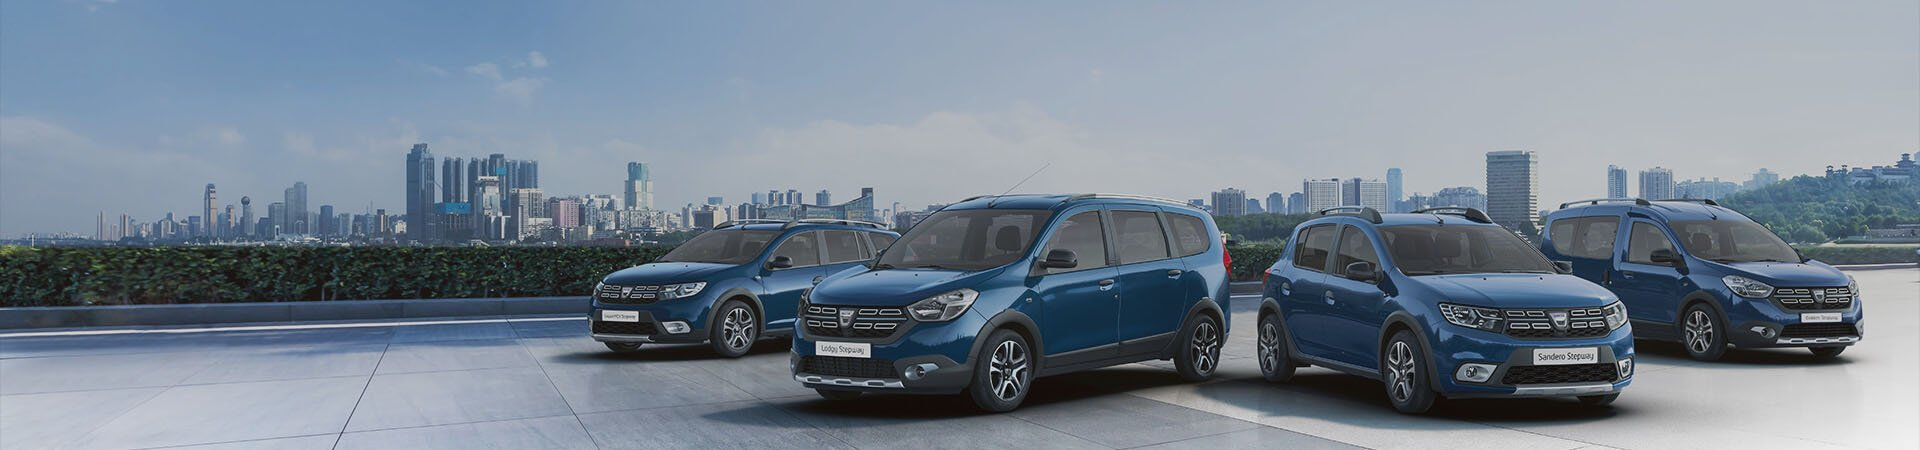 Dacia Stepway Slider